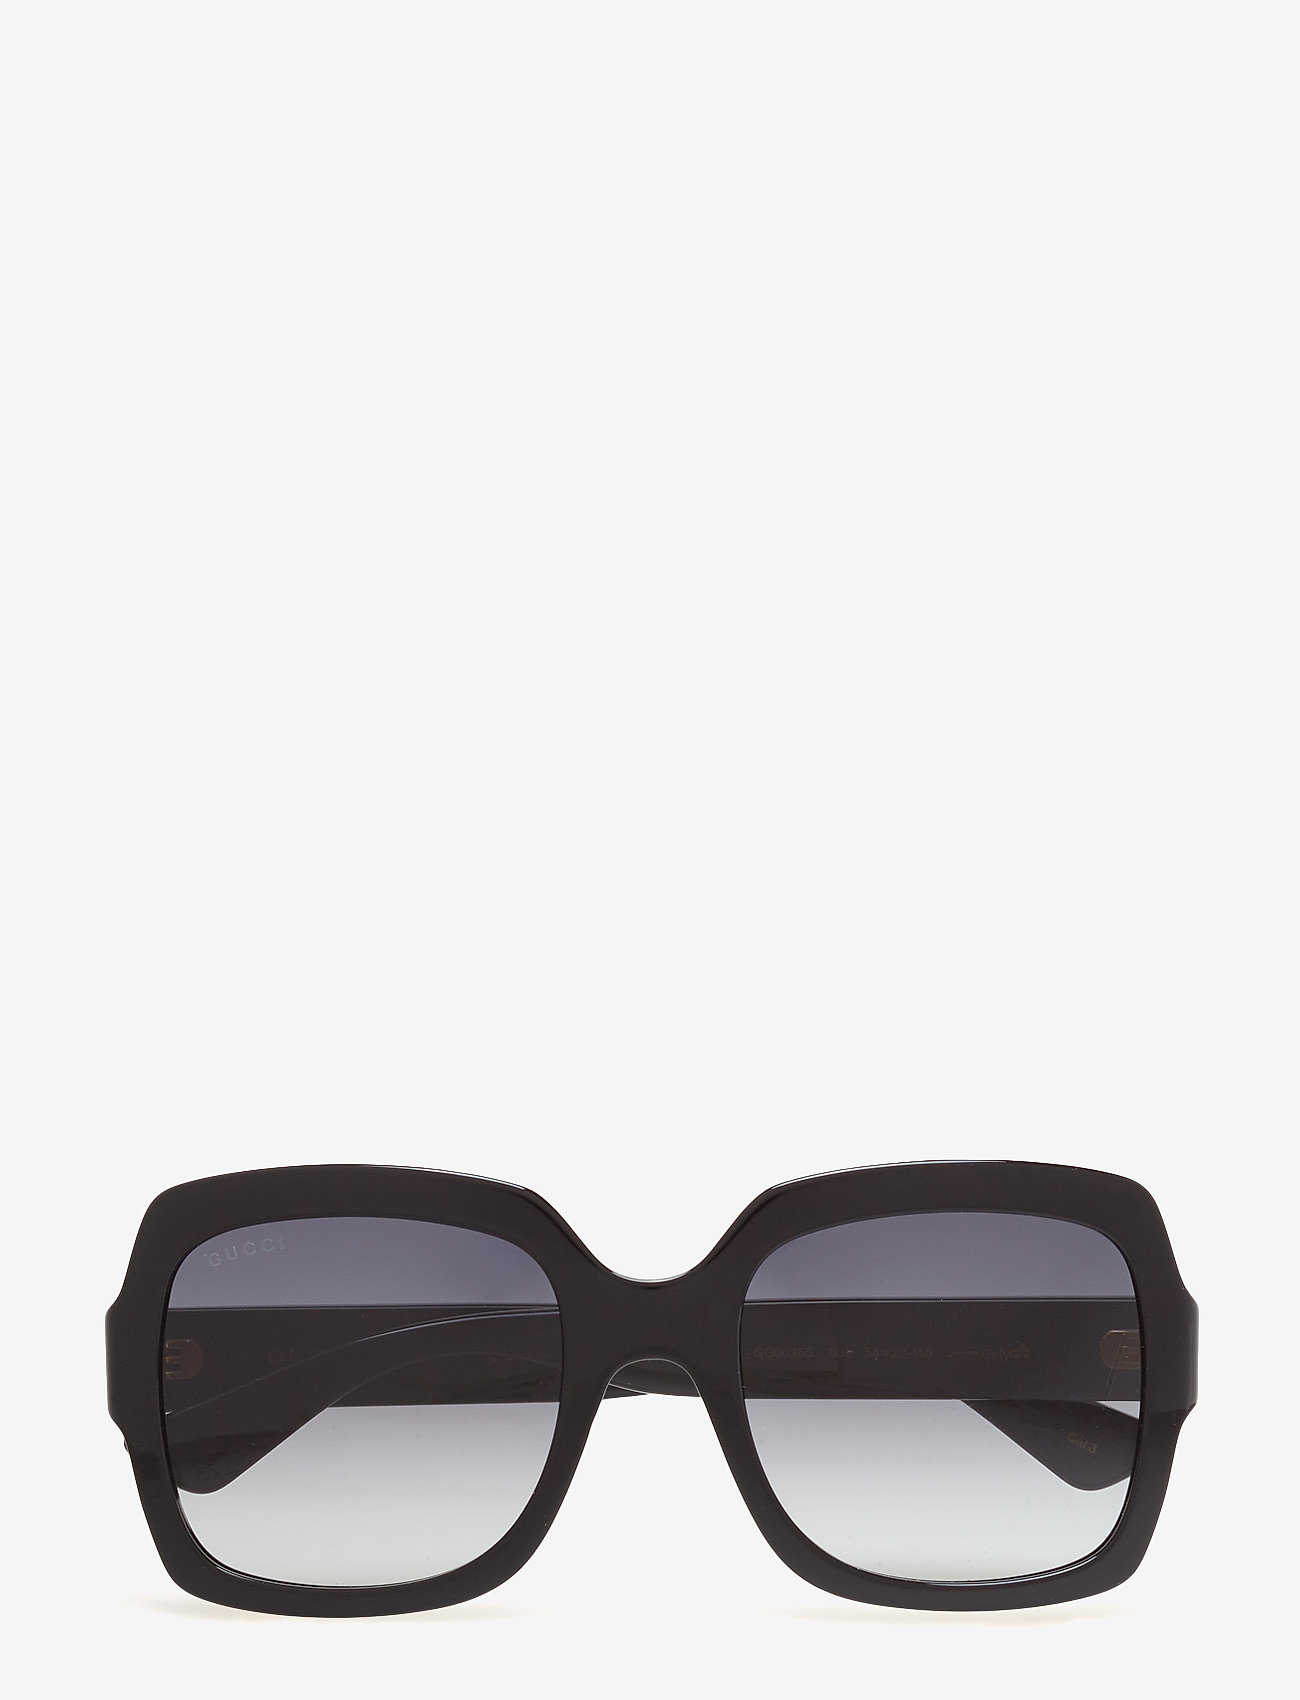 Gucci Sunglasses - GG0036S - black-black-grey - 0